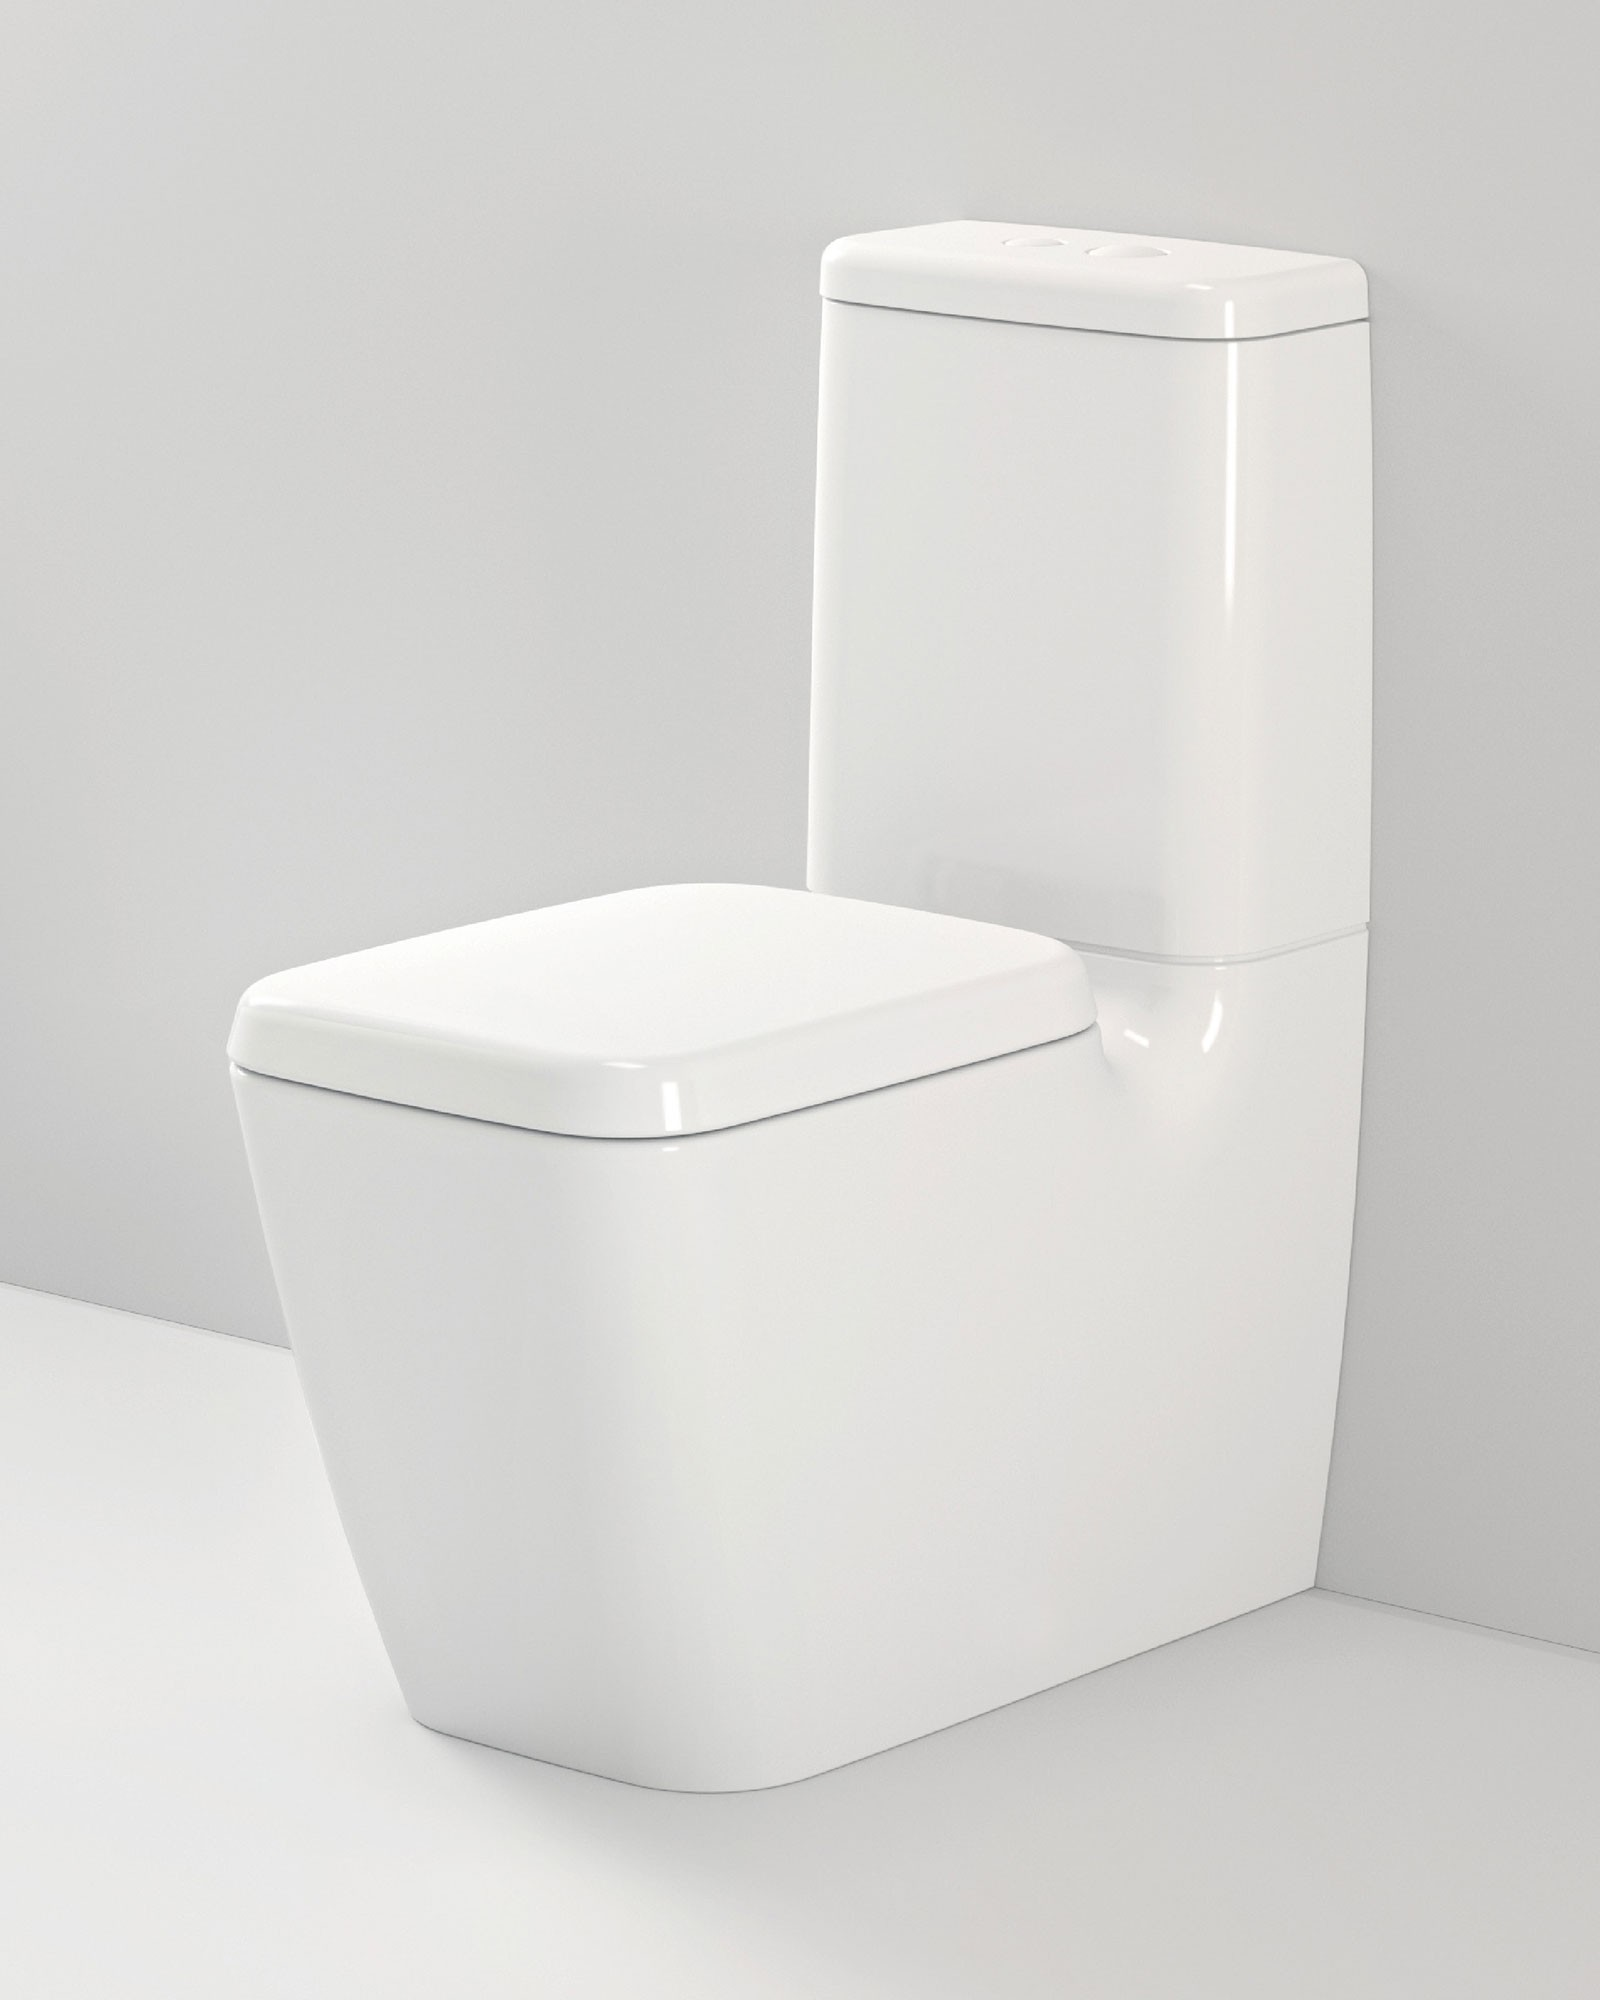 Bathroom Range